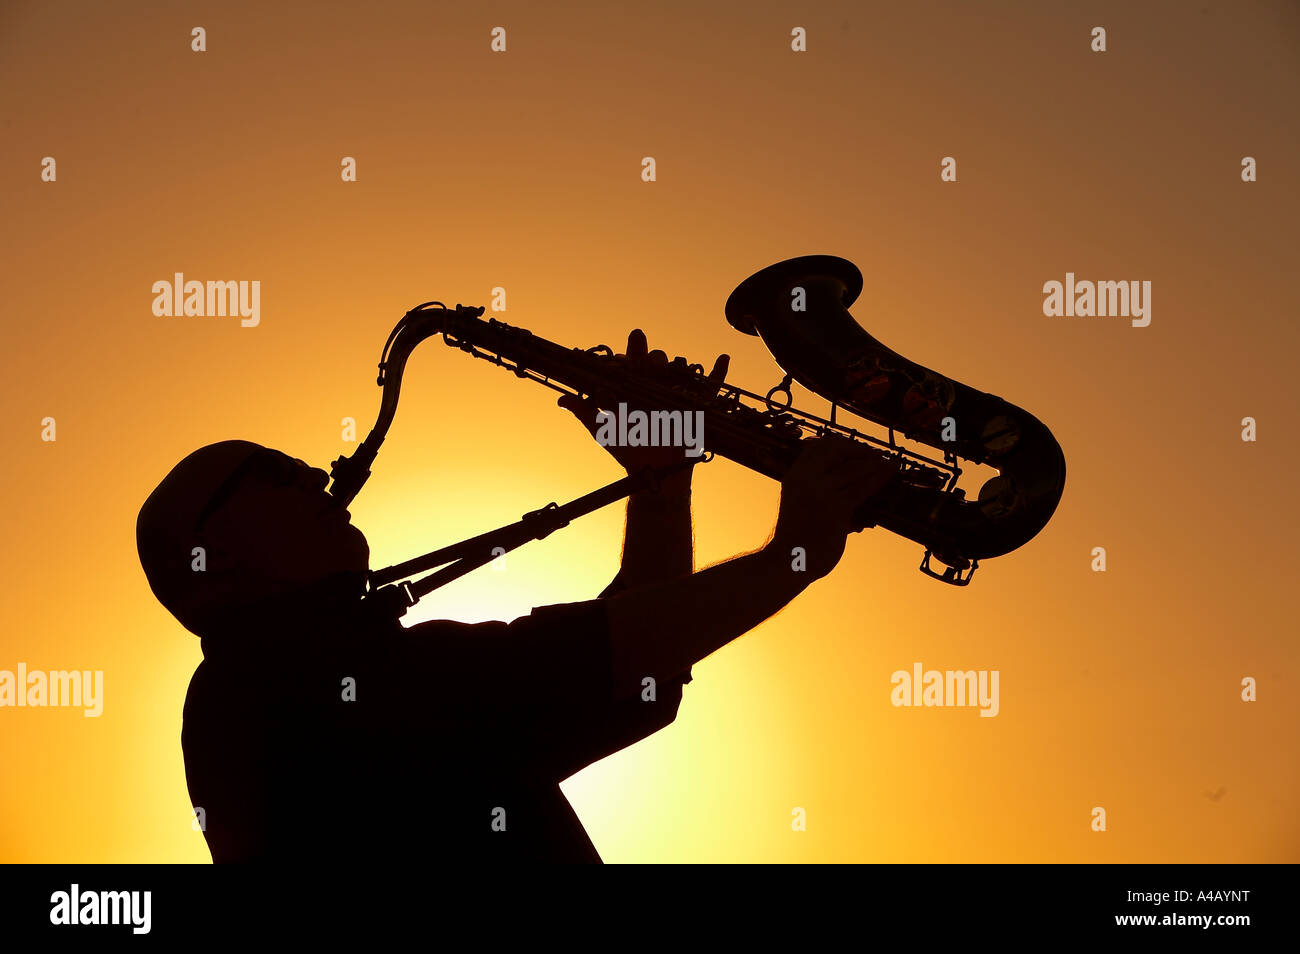 Silhouette of man playing the saxophone - Stock Image